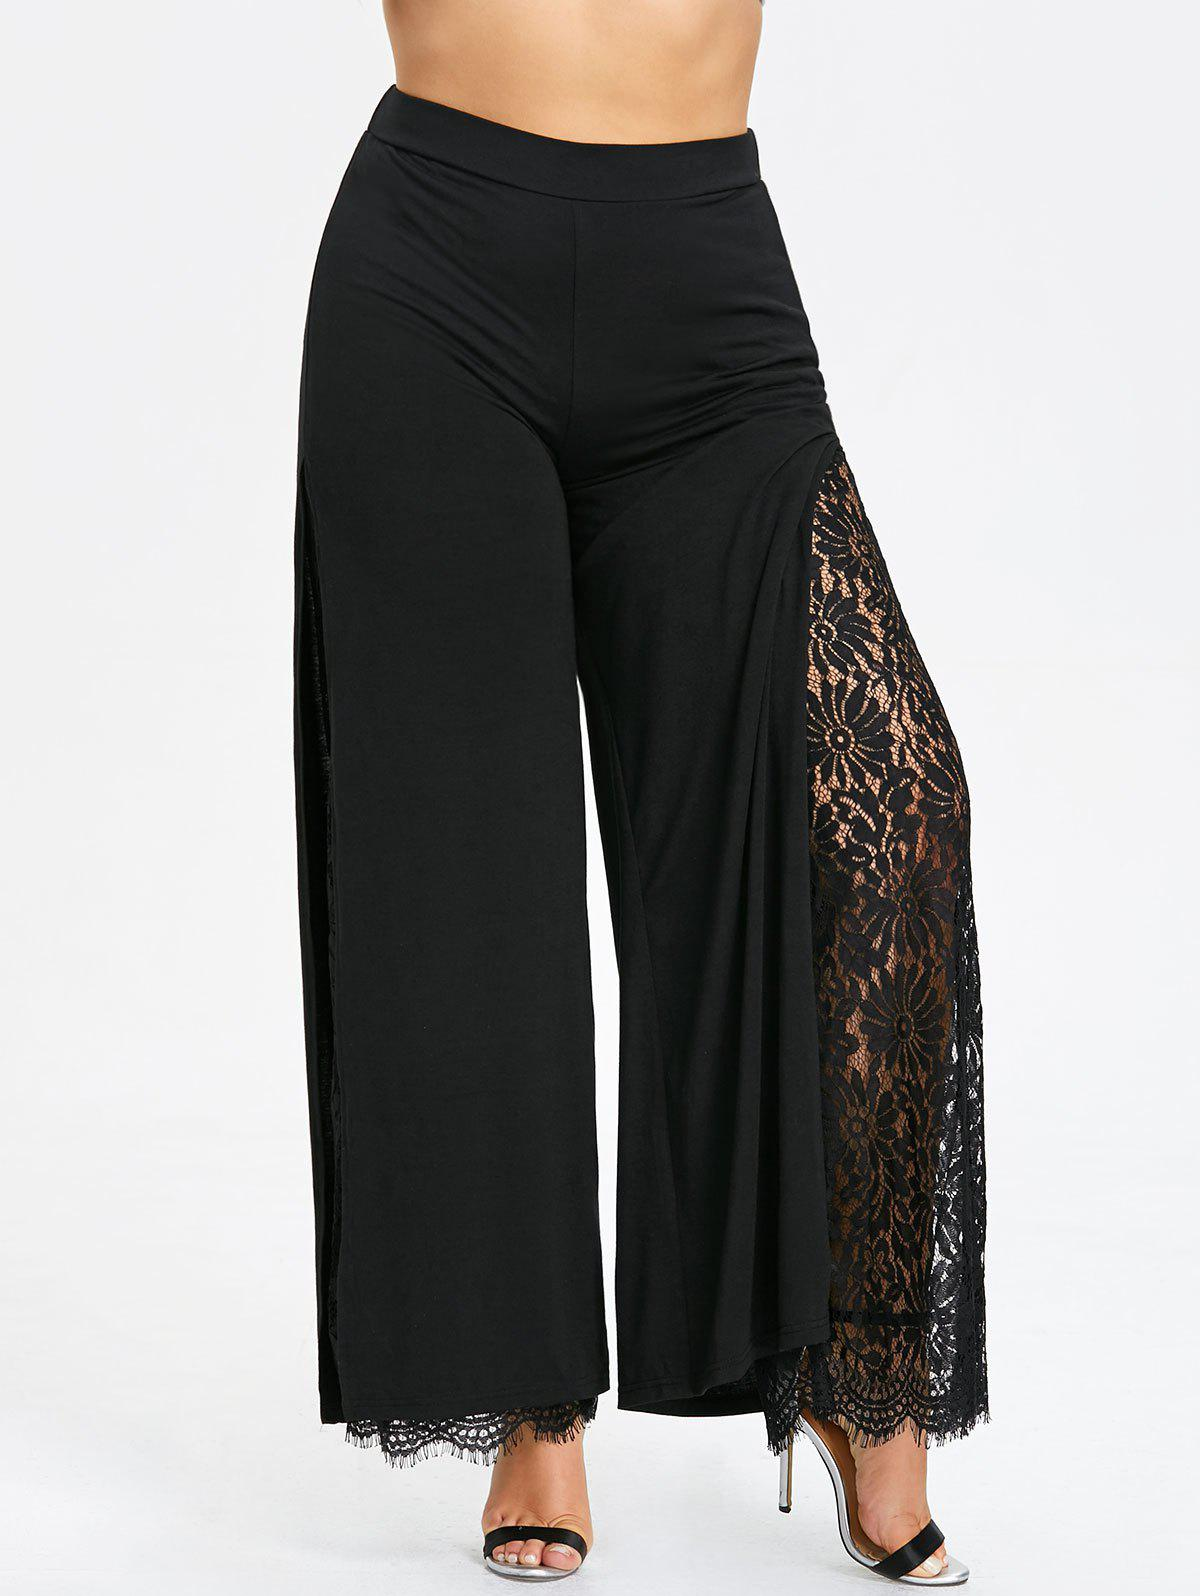 60096313e52 2019 Plus Size Lace High Slit Palazzo Pants